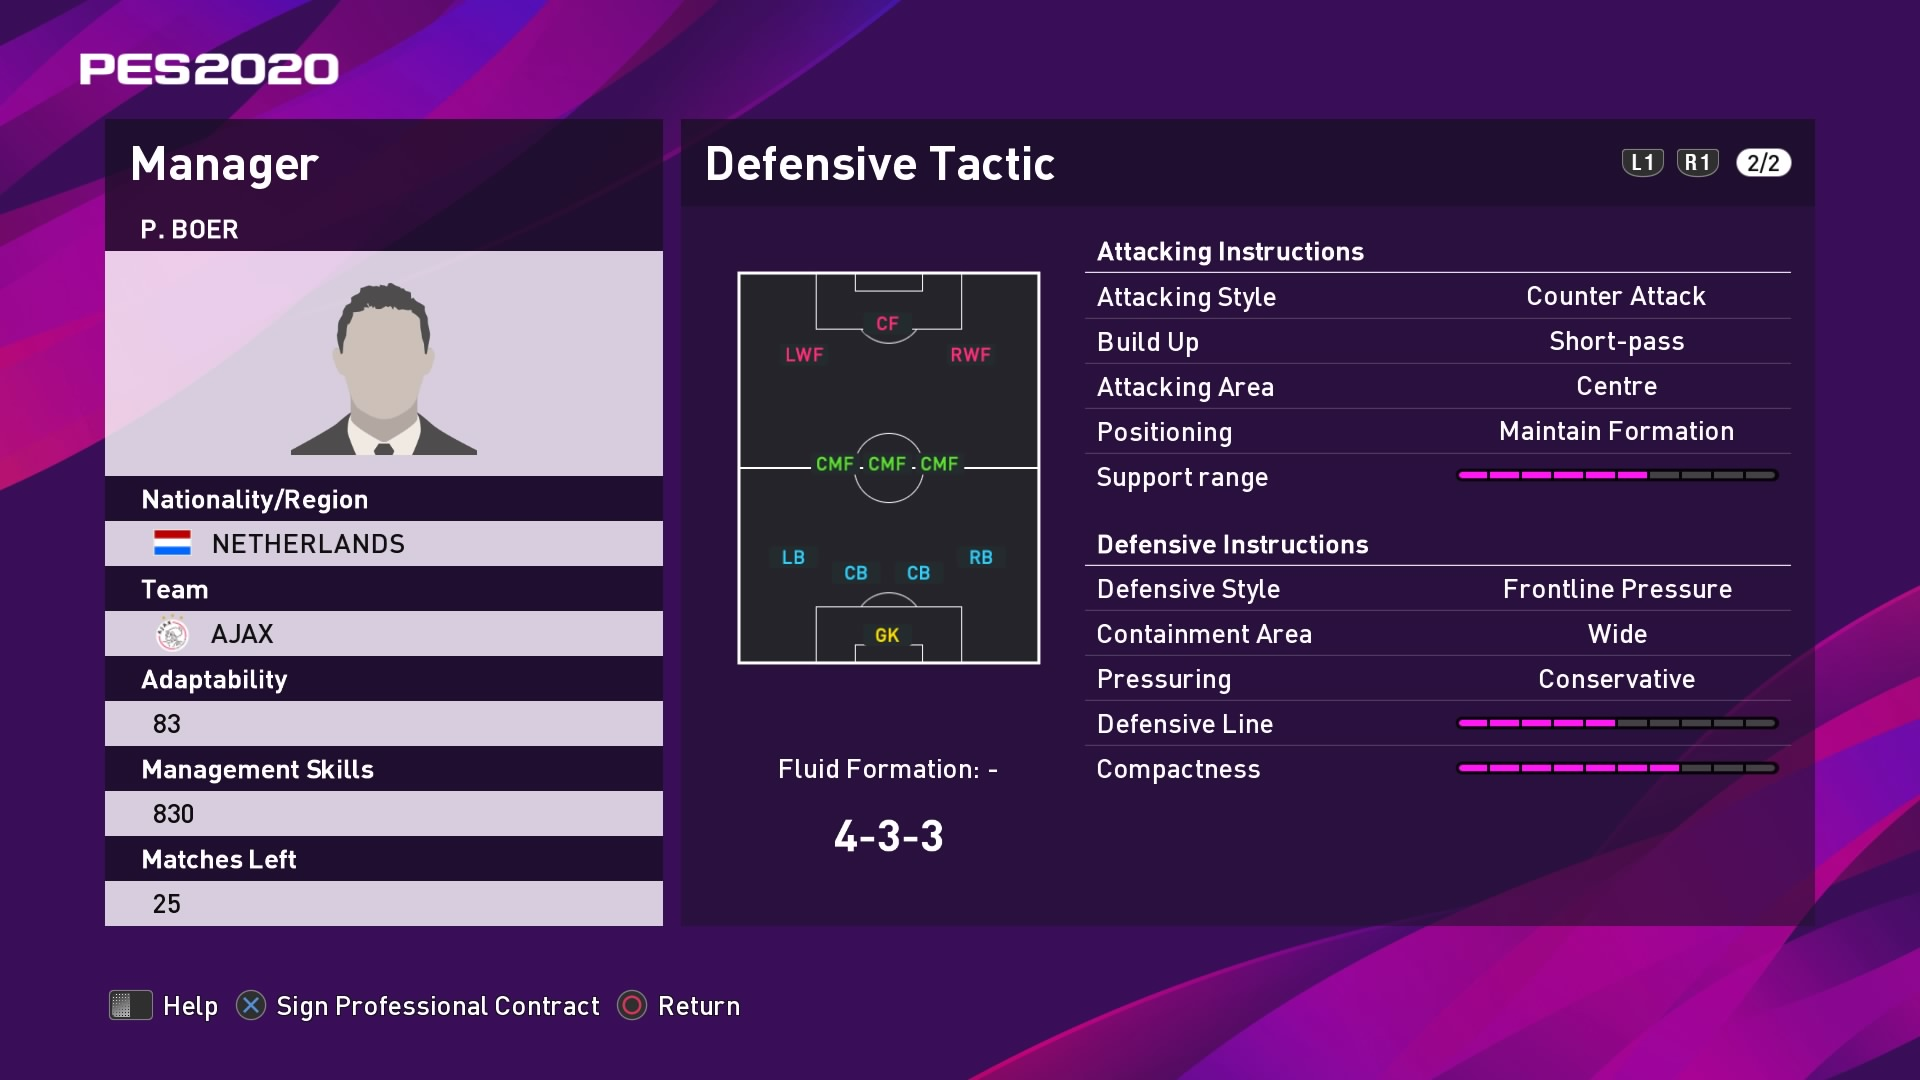 P. Boer (3) (Erik ten Hag) Defensive Tactic in PES 2020 myClub